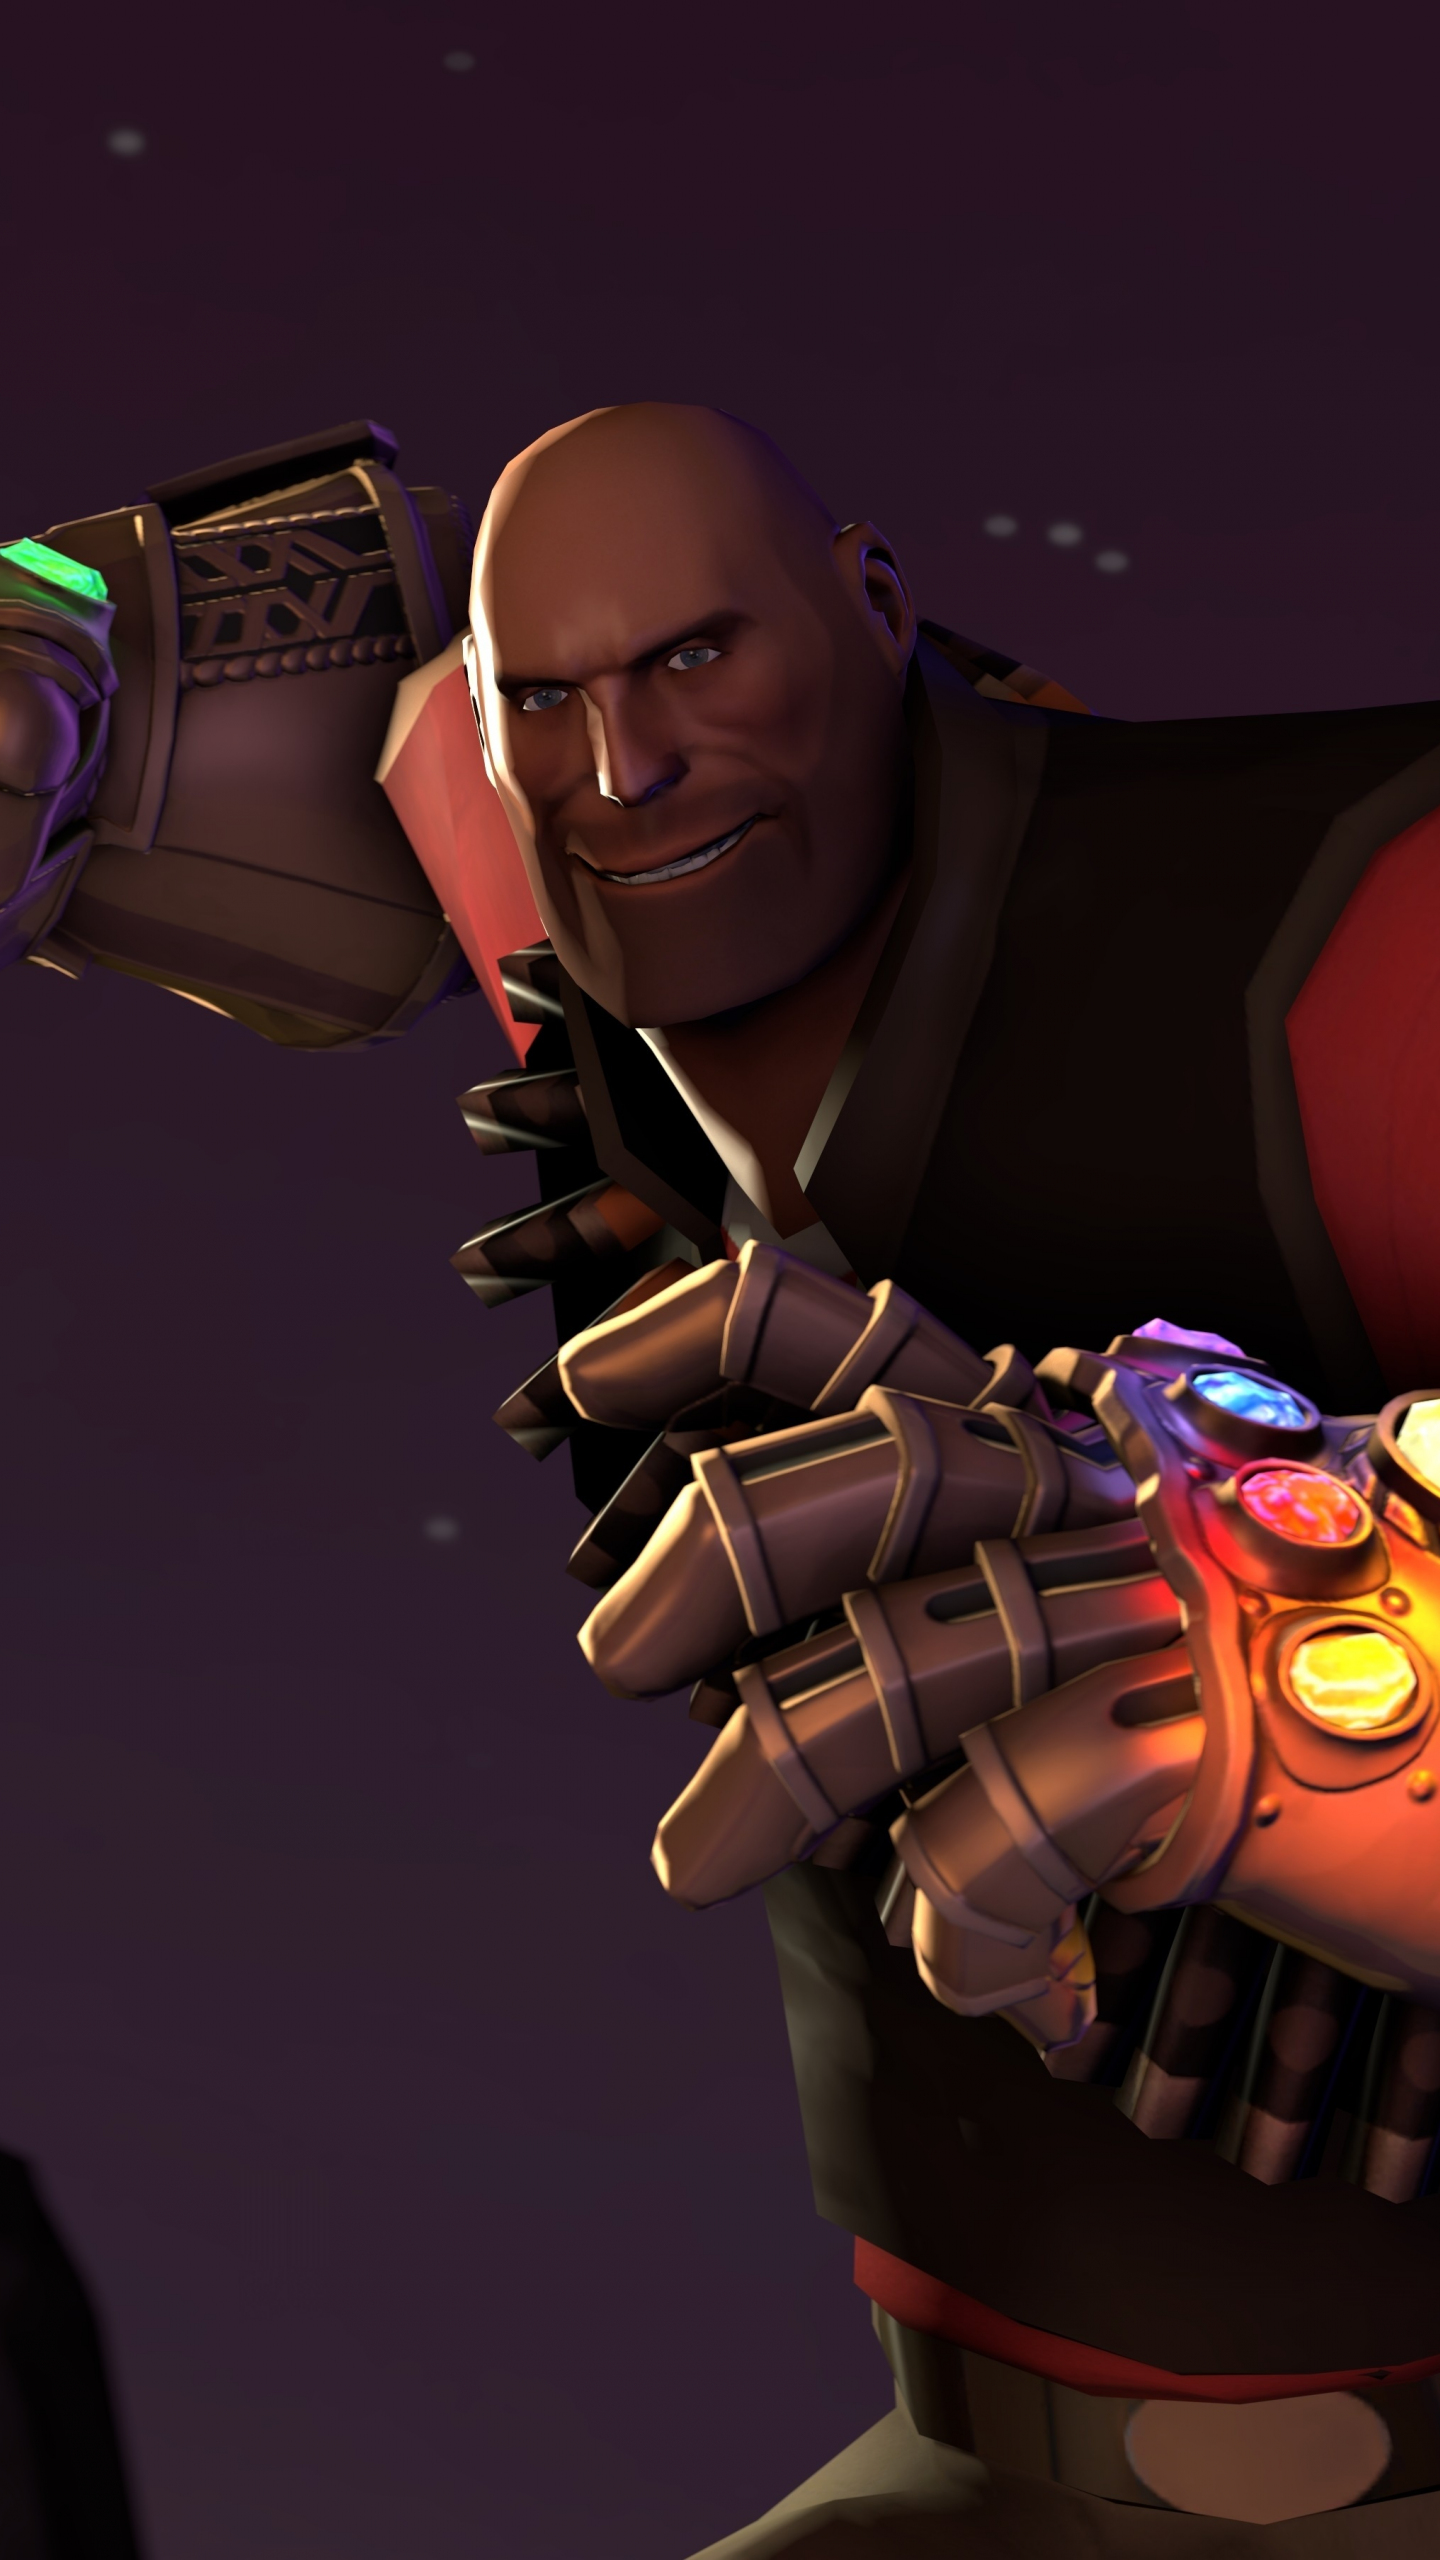 video game thanos infinity gauntlet fortnite 2018 1440x2560 wallpaper - fortnite thanos hd wallpaper